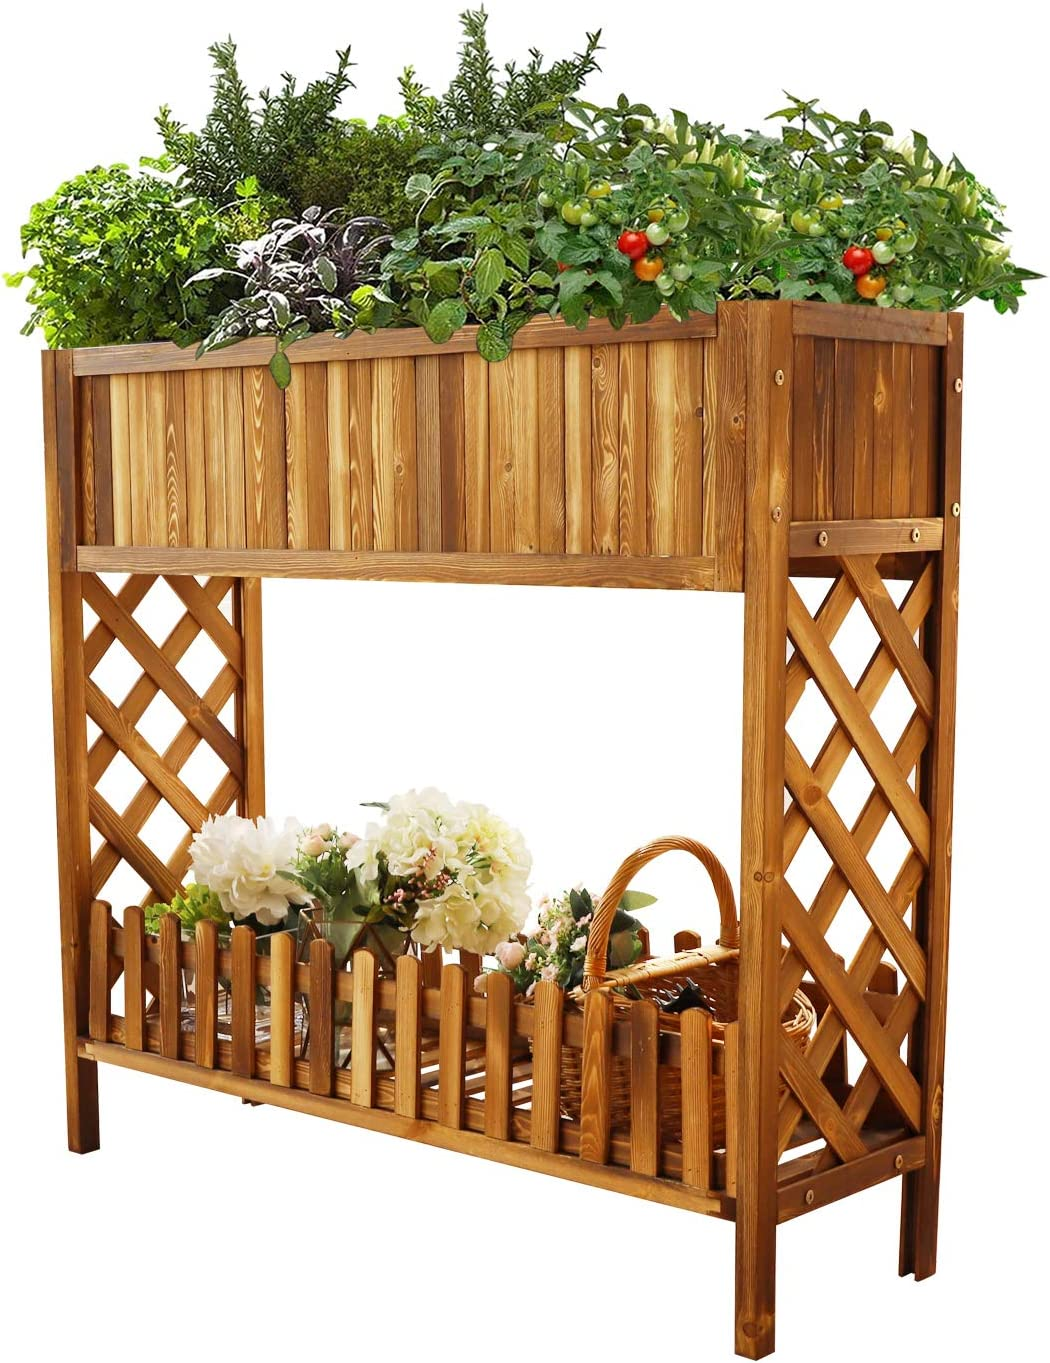 Raised Garden Bed, ToteBox Wood Planter Box, Elevated Raised Bed Garden Kit with Legs for Flower Herb Vegetables Growing in Outdoor Indoor Patio Balcony Garden, 37.4